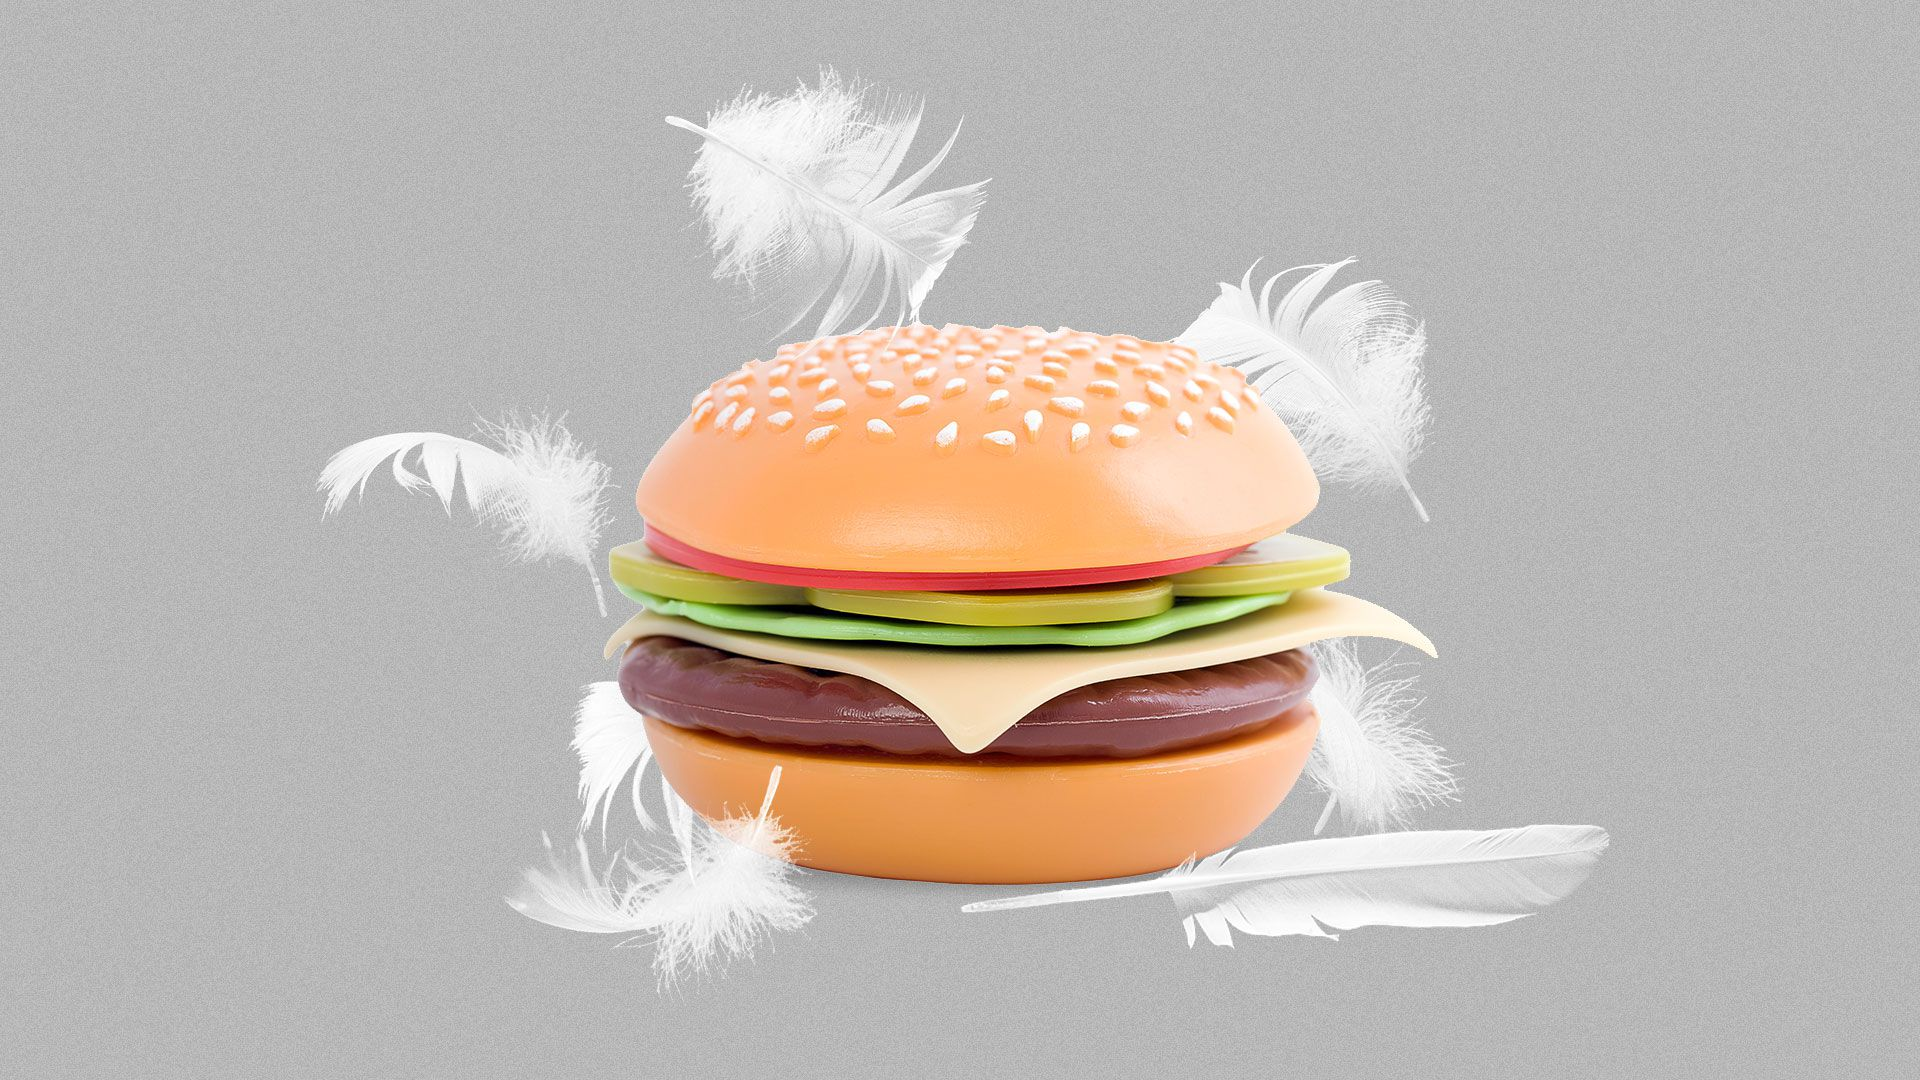 Illustration of a plastic hamburger surrounded by chicken feathers.